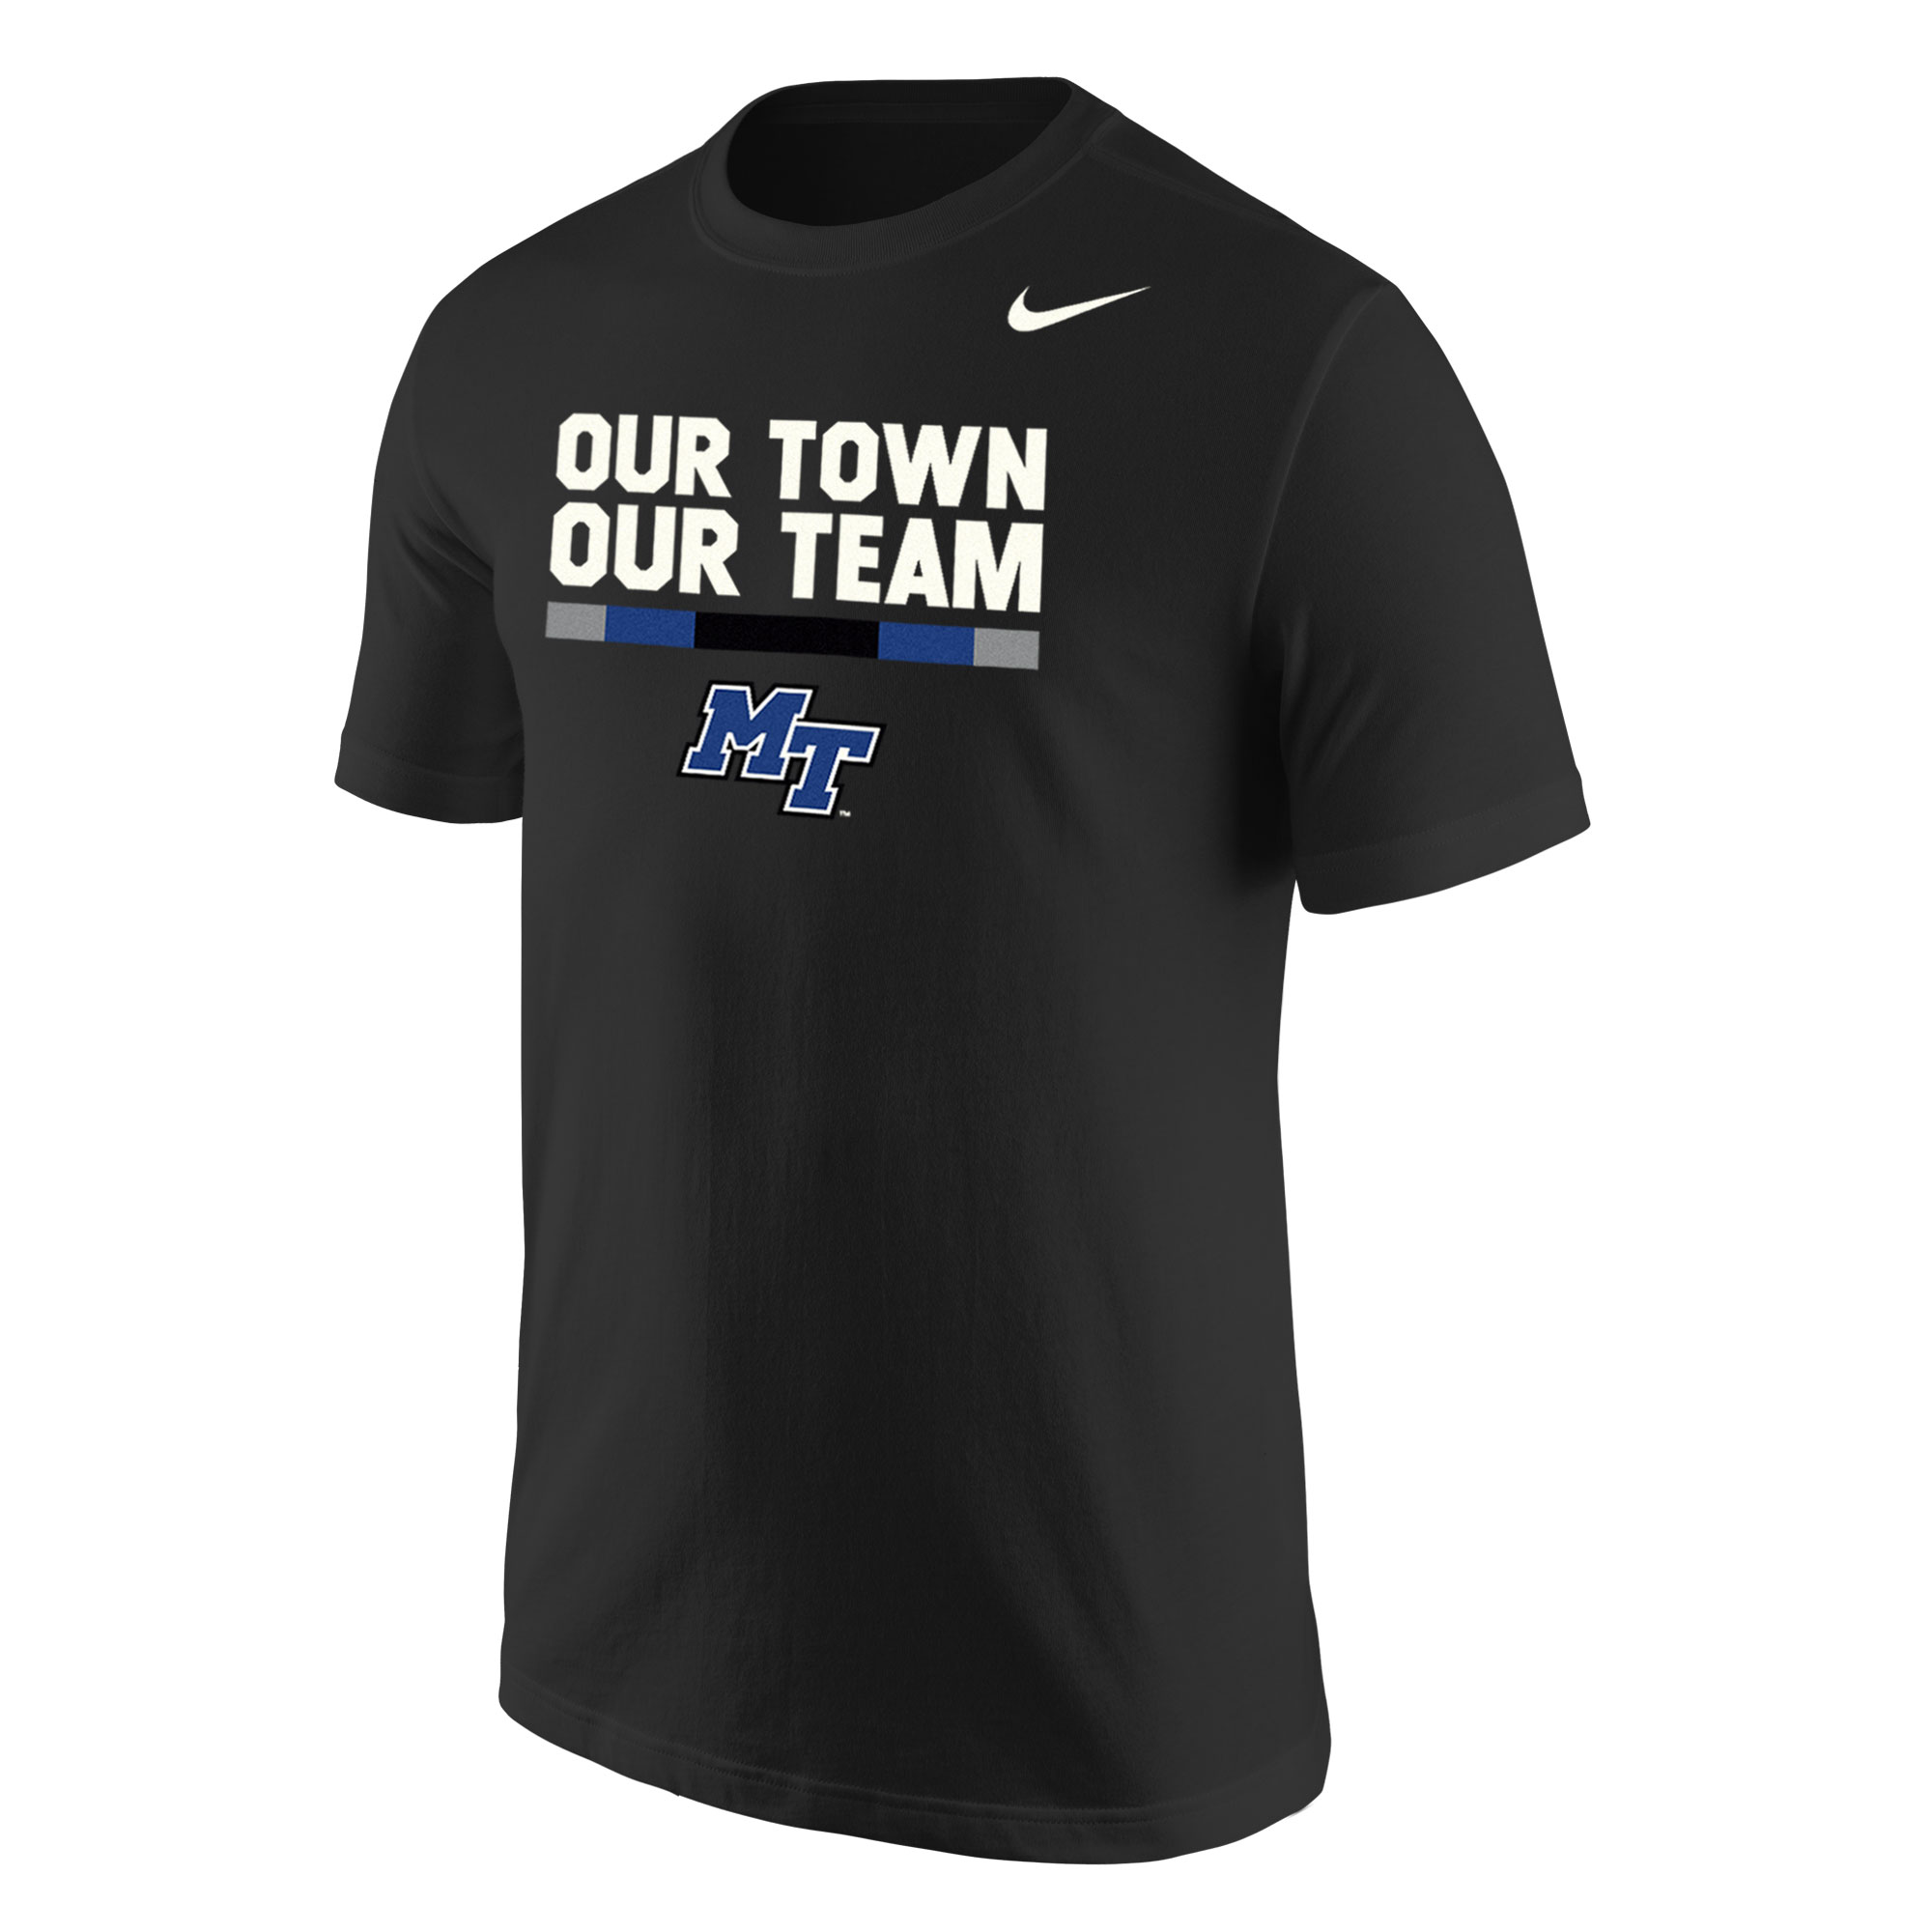 Our Town Our Team Core All Purpose Nike® Tshirt